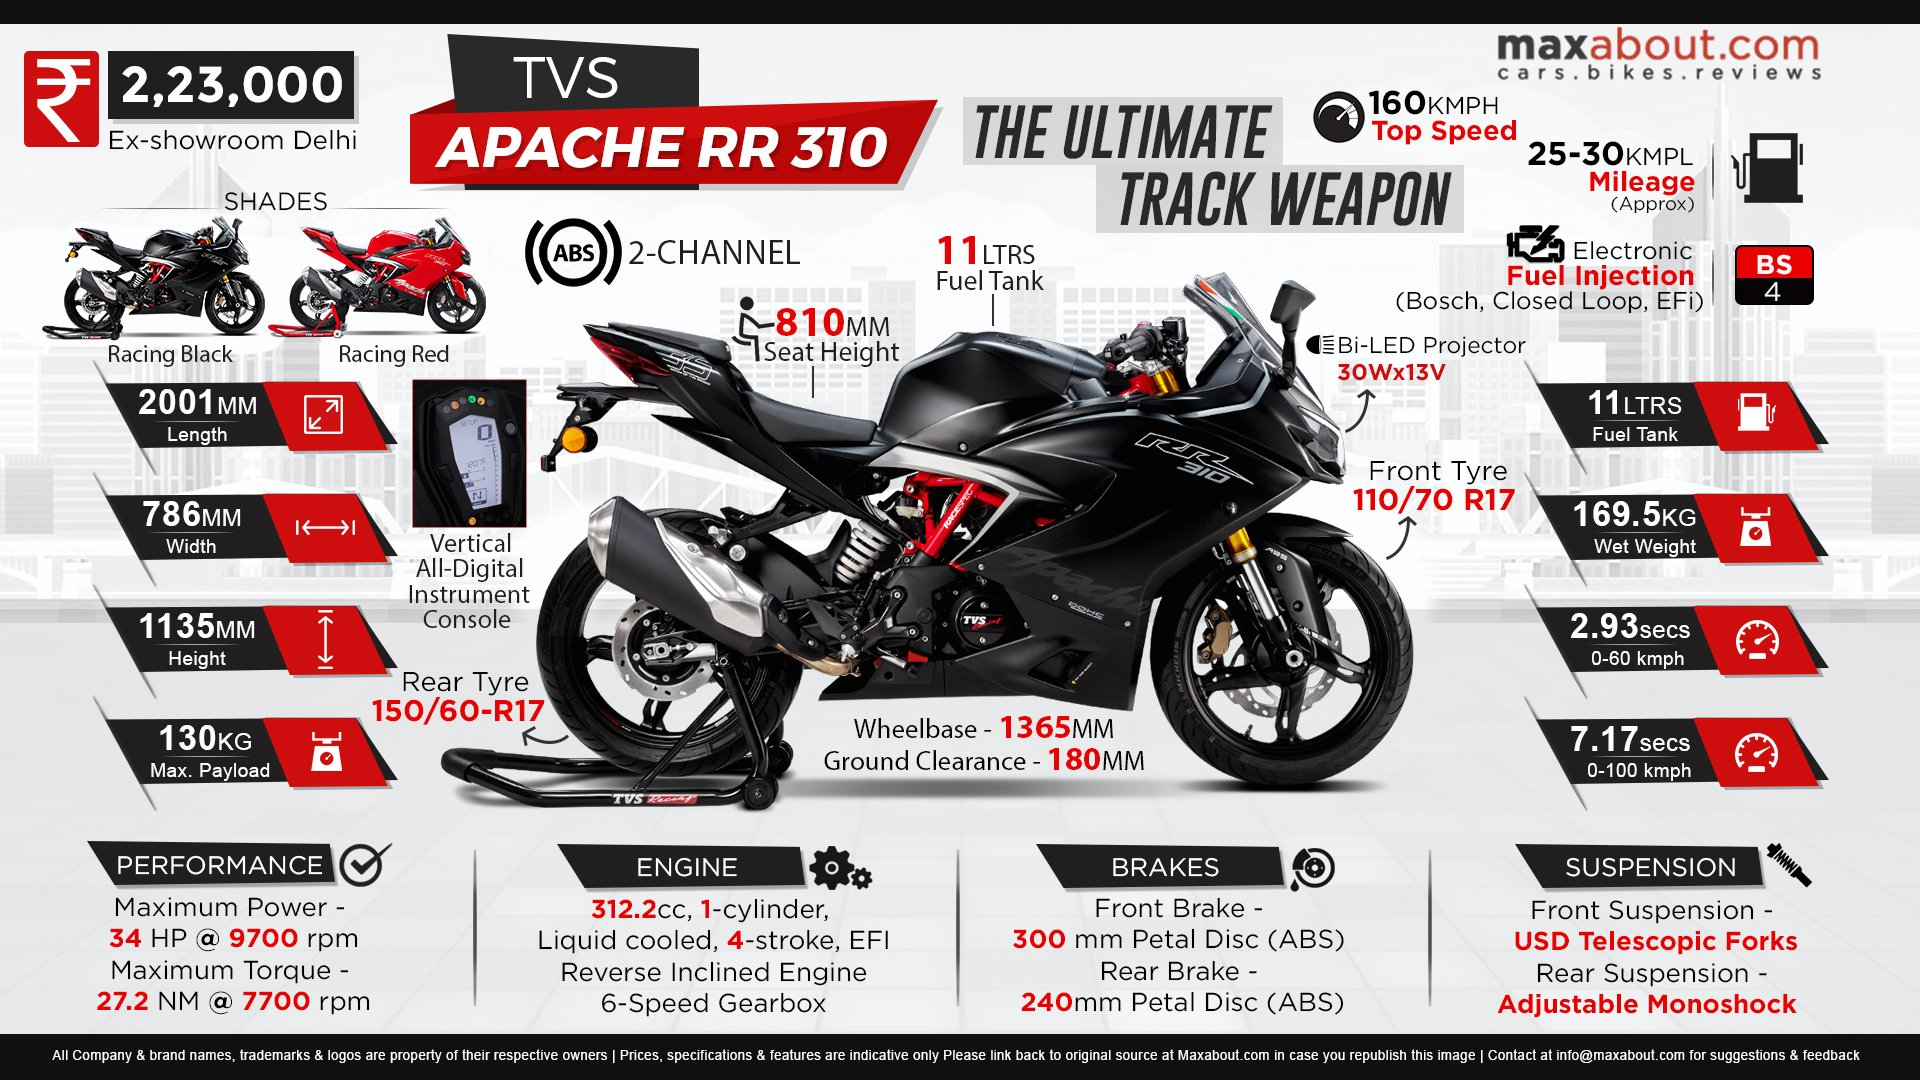 Tremendous 17 Tvs Apache Wallpapers On Wallpapersafari Alphanode Cool Chair Designs And Ideas Alphanodeonline